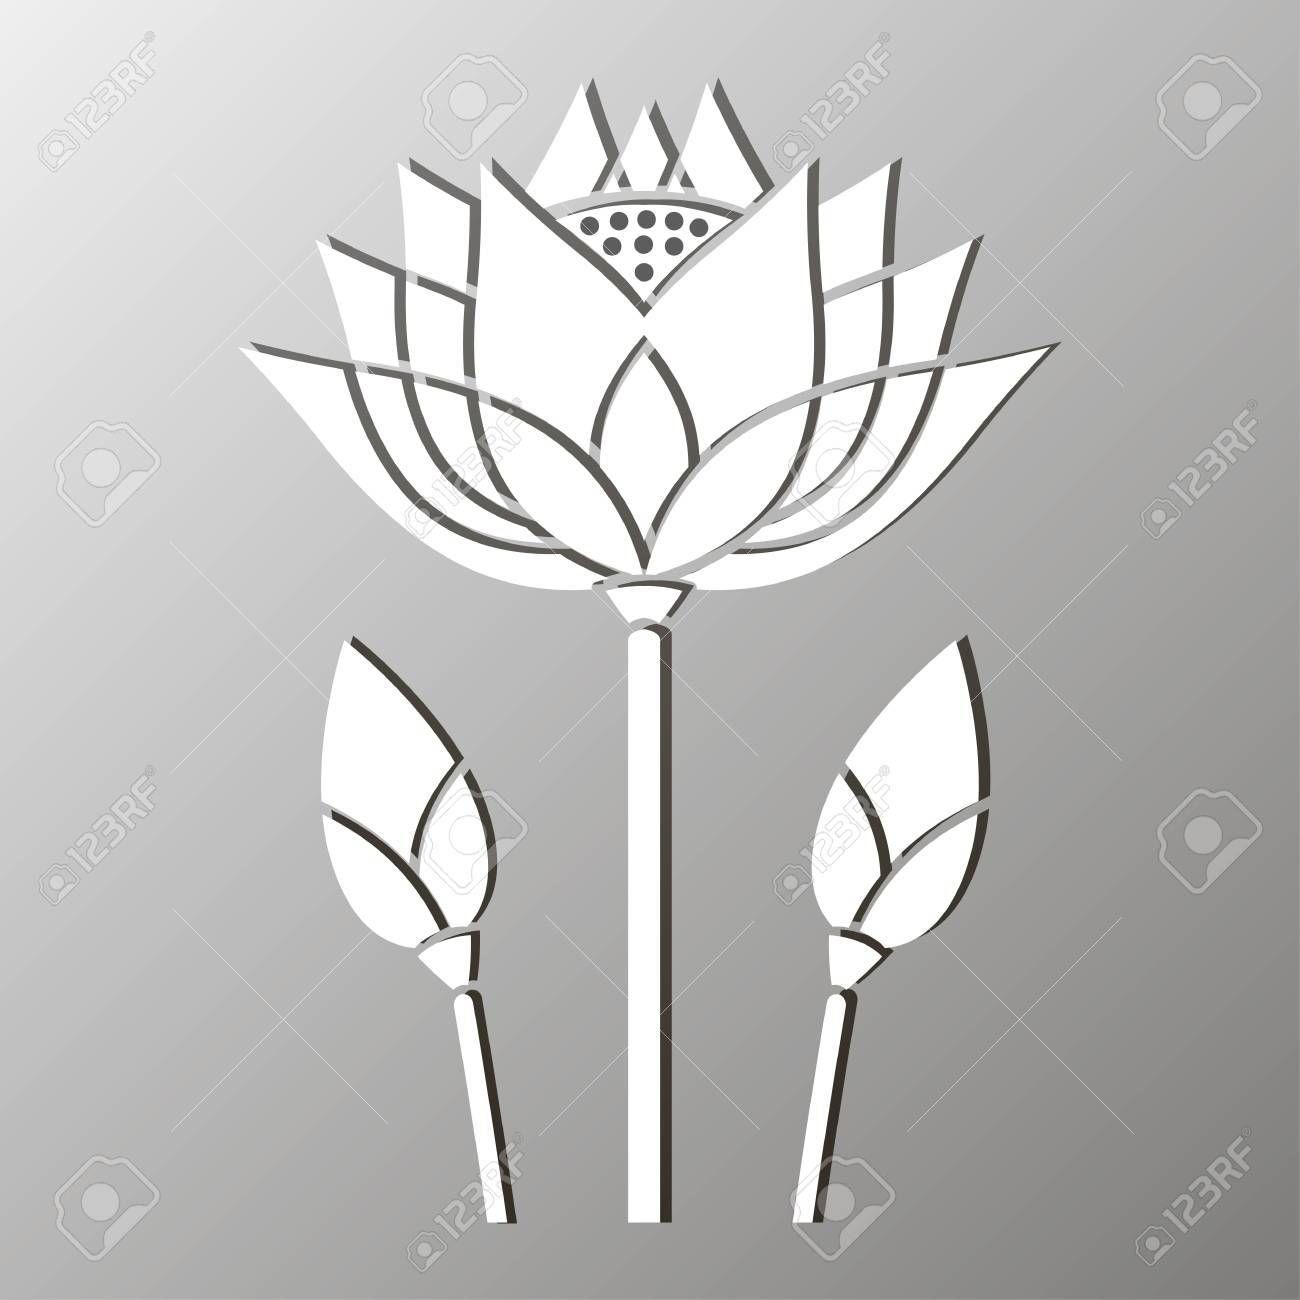 Monochrome mosaic of a stylized lotus flower design royalty free monochrome mosaic of a stylized lotus flower design stock vector 58104059 izmirmasajfo